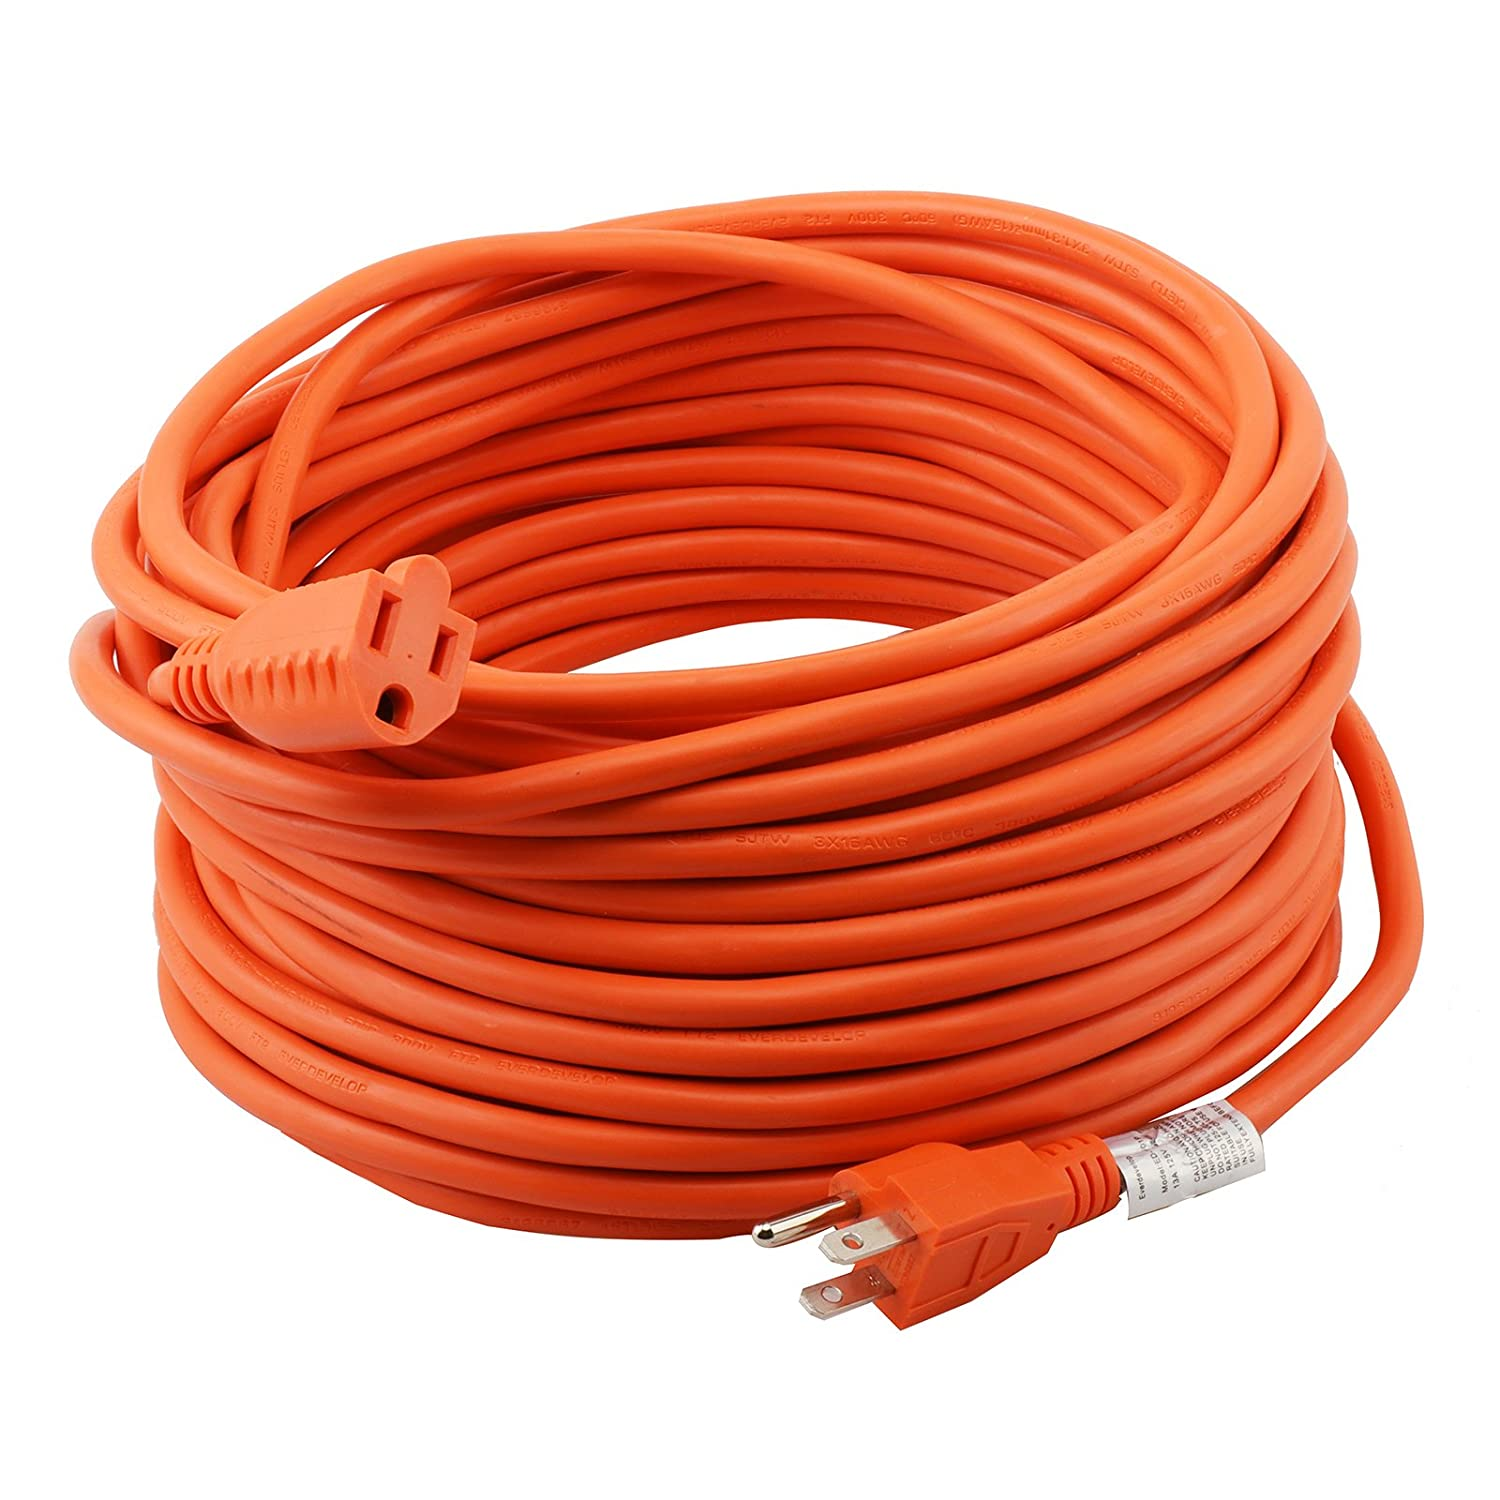 Epicord 16 3 Extension Cord Outdoor Extension Cord 50 Ft Orange Heavy Duty Extension Cord Amazon Com